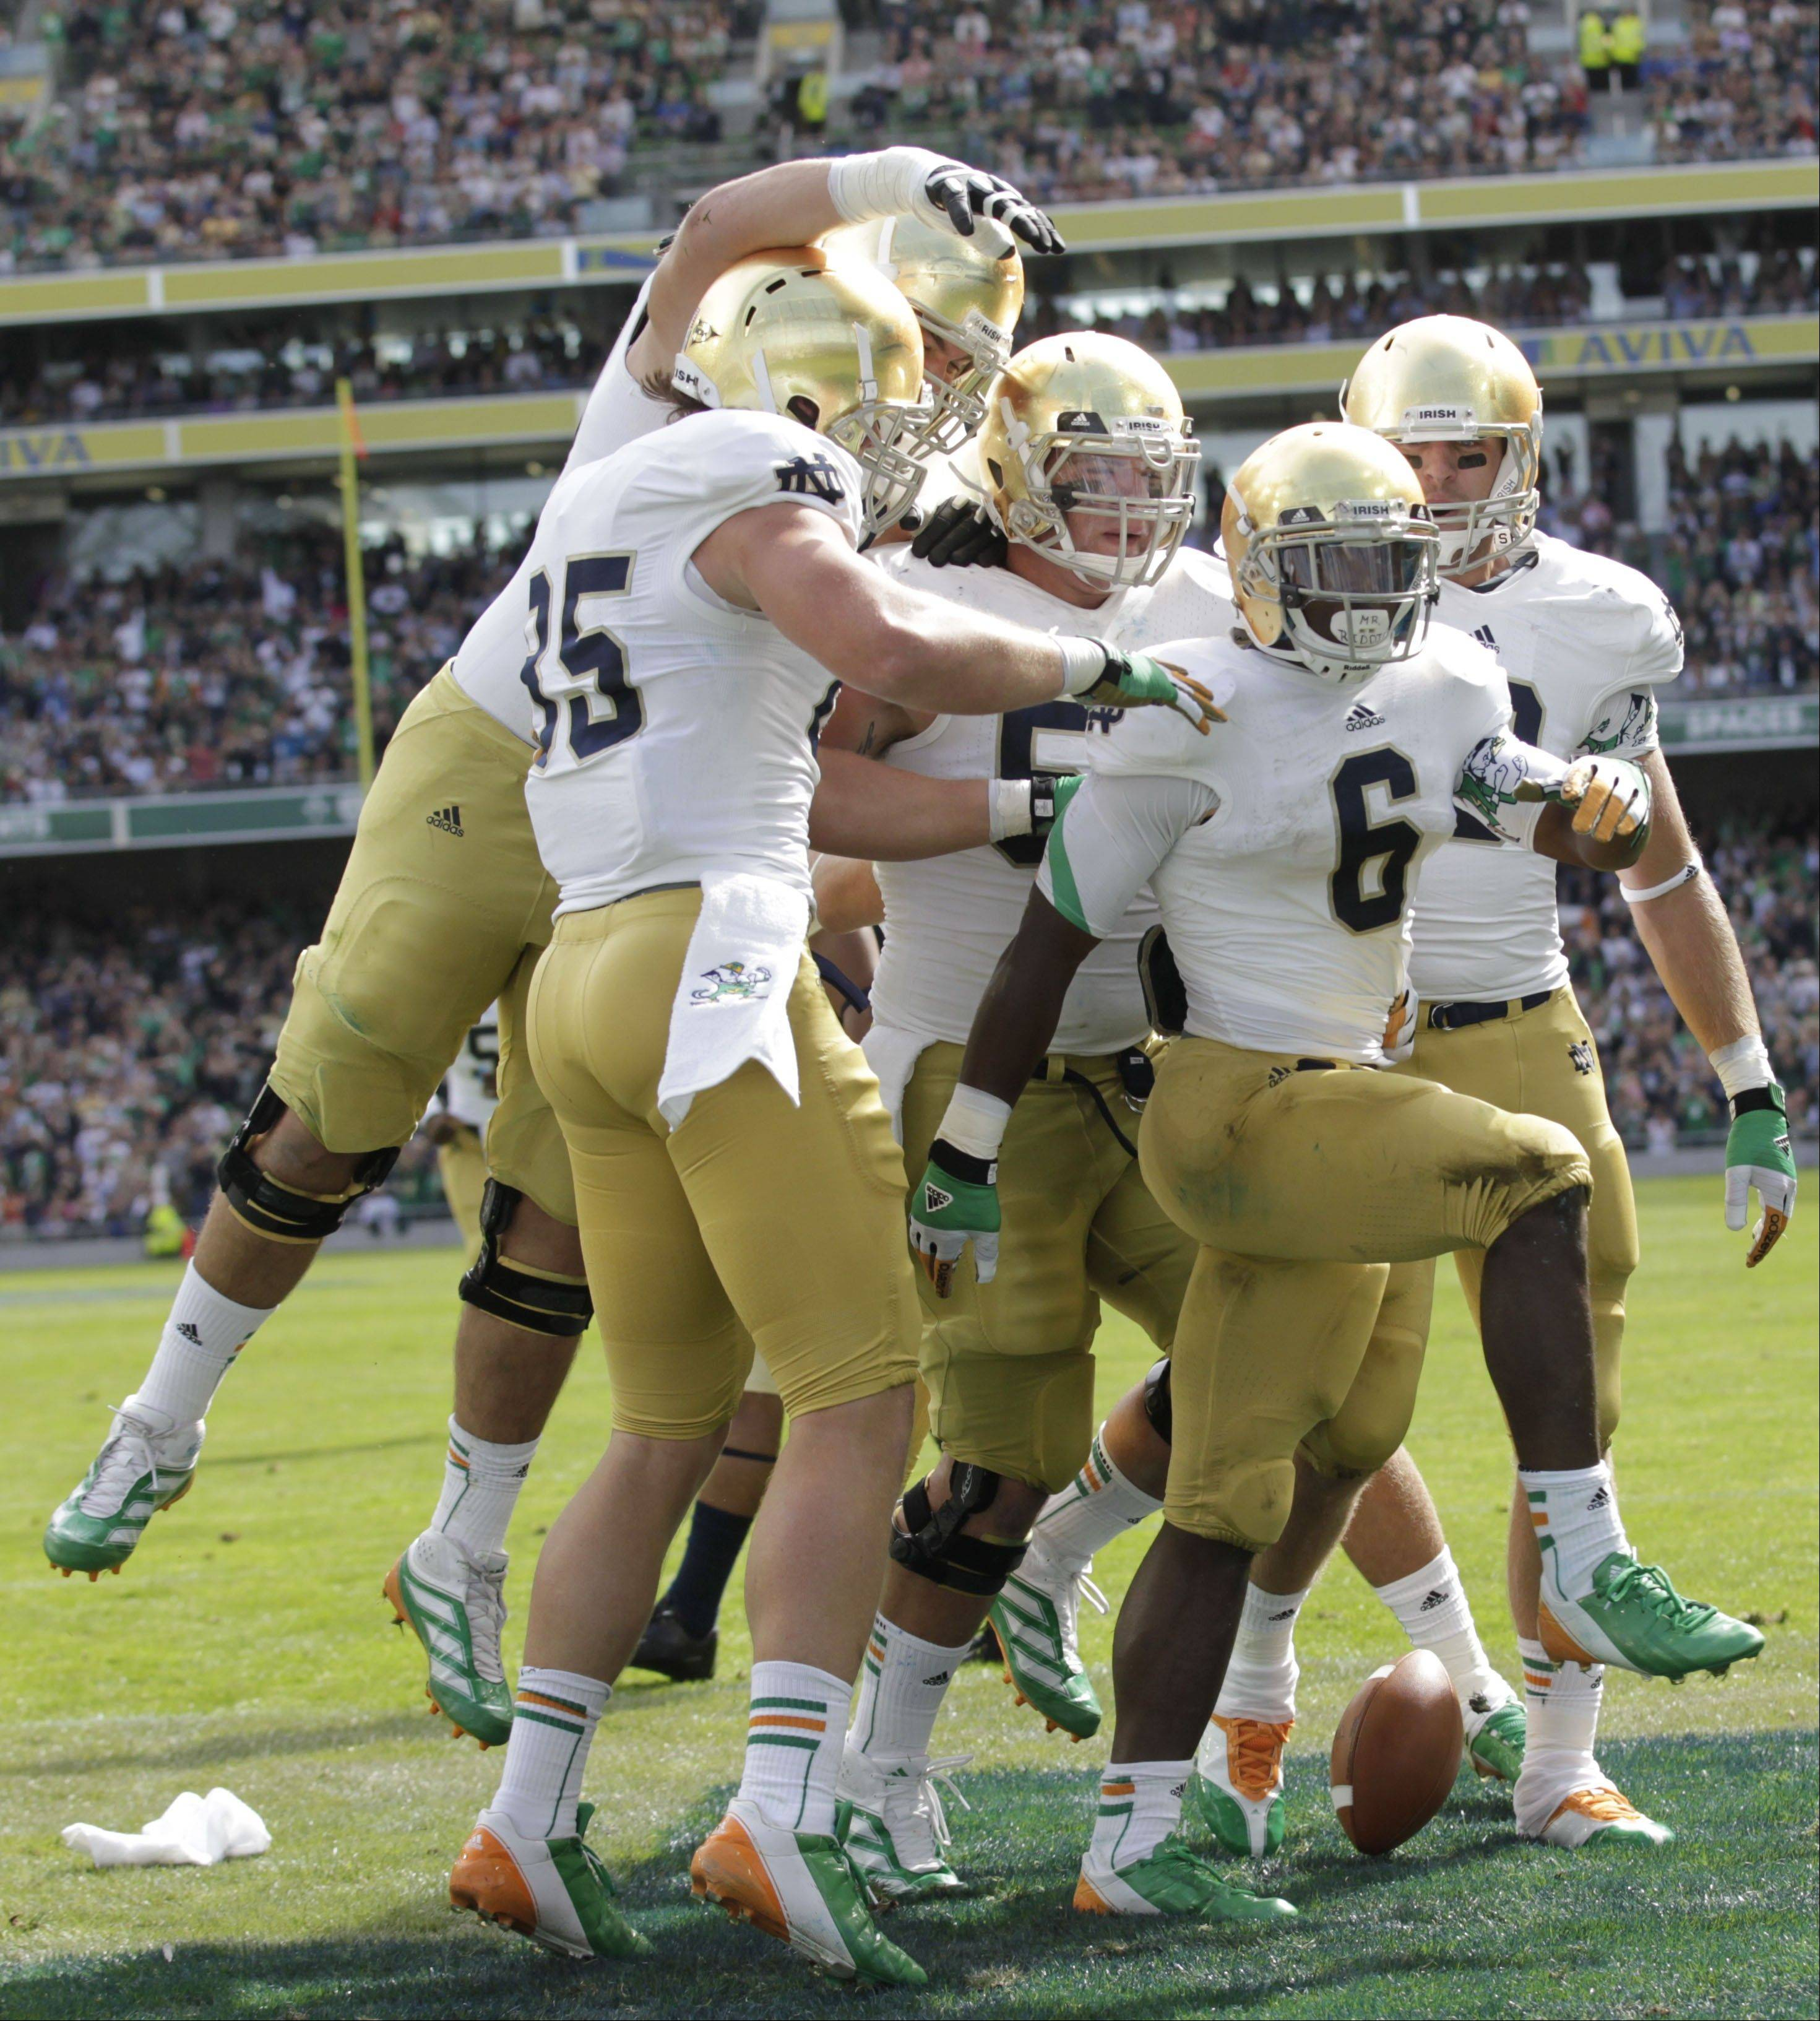 Notre Dame's Theo Riddick, right, celebrates with teammates after scoring a touchdown against Navy last Saturday in Dublin, Ireland.